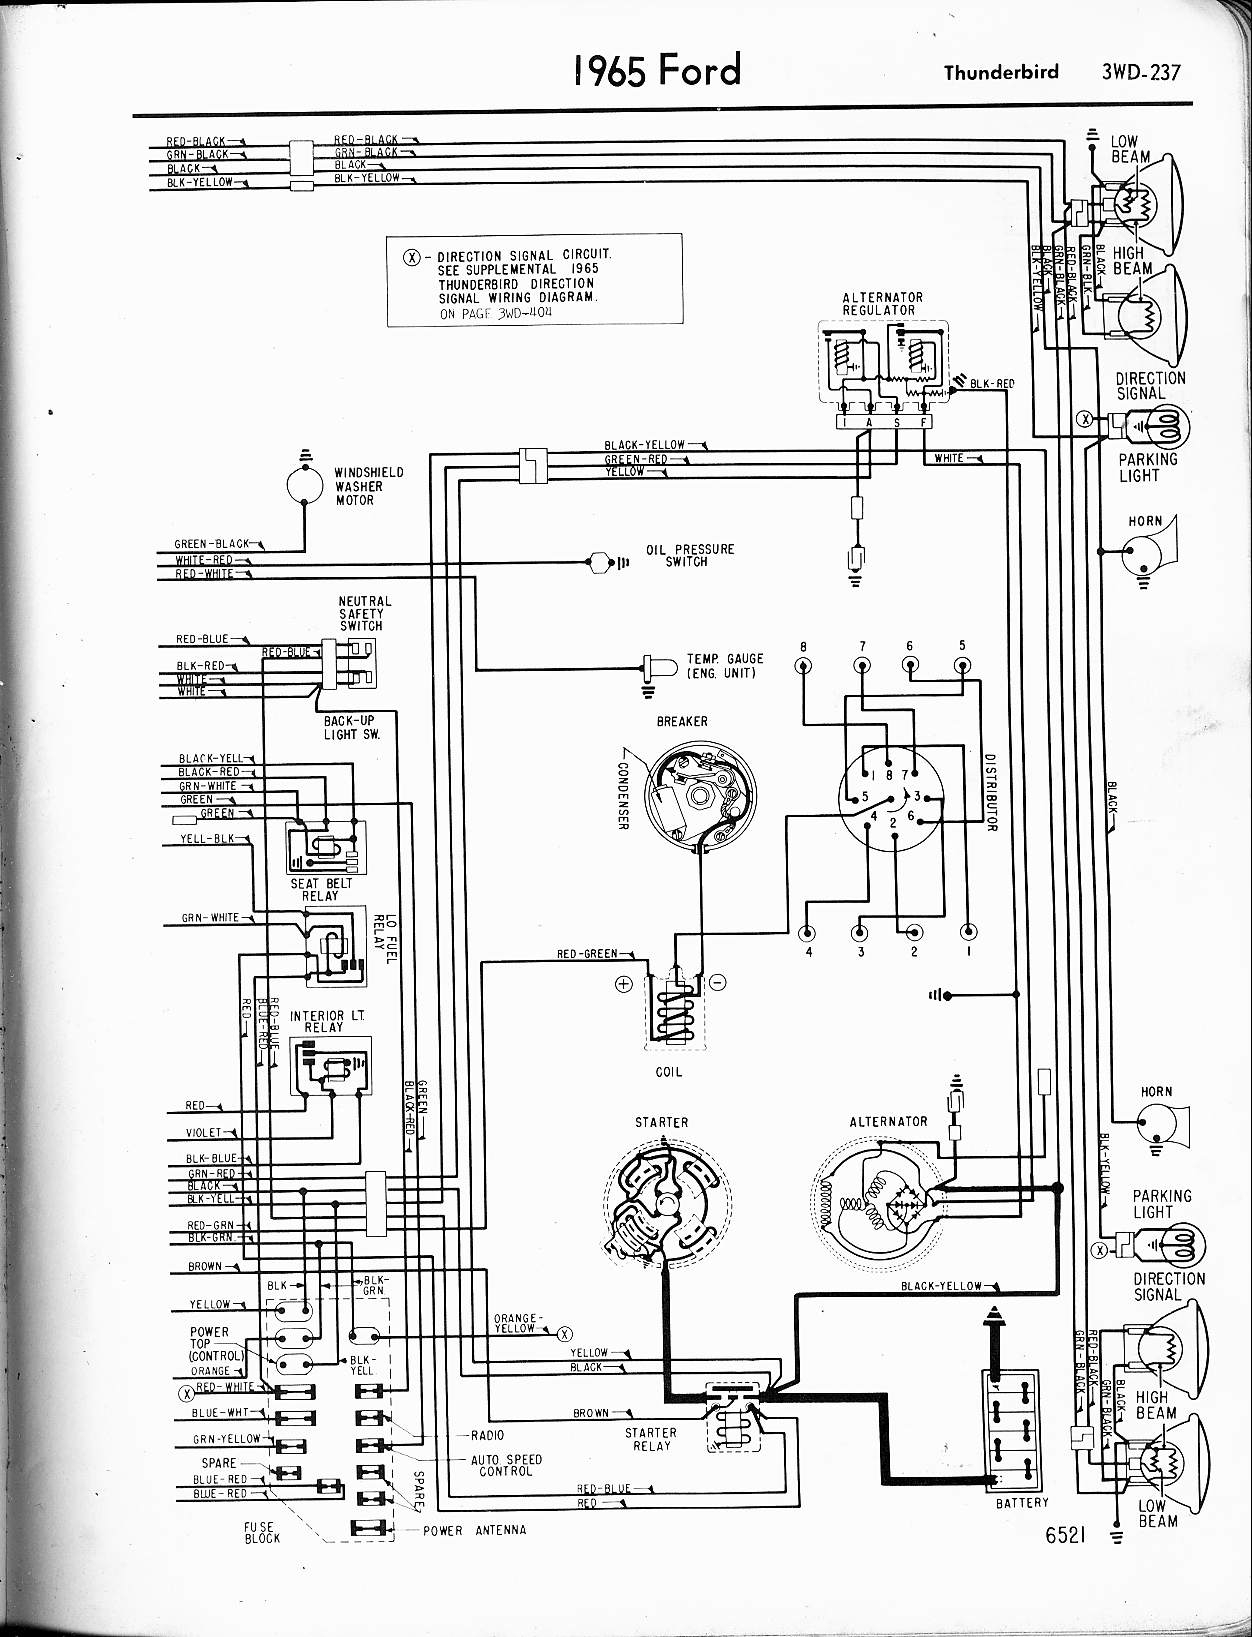 escort power cord wiring diagram Collection-Ford Escort Wiring Diagrams Free Awesome 65 ford F100 Wiring Diagram Wiring Diagrams Schematics 7-o